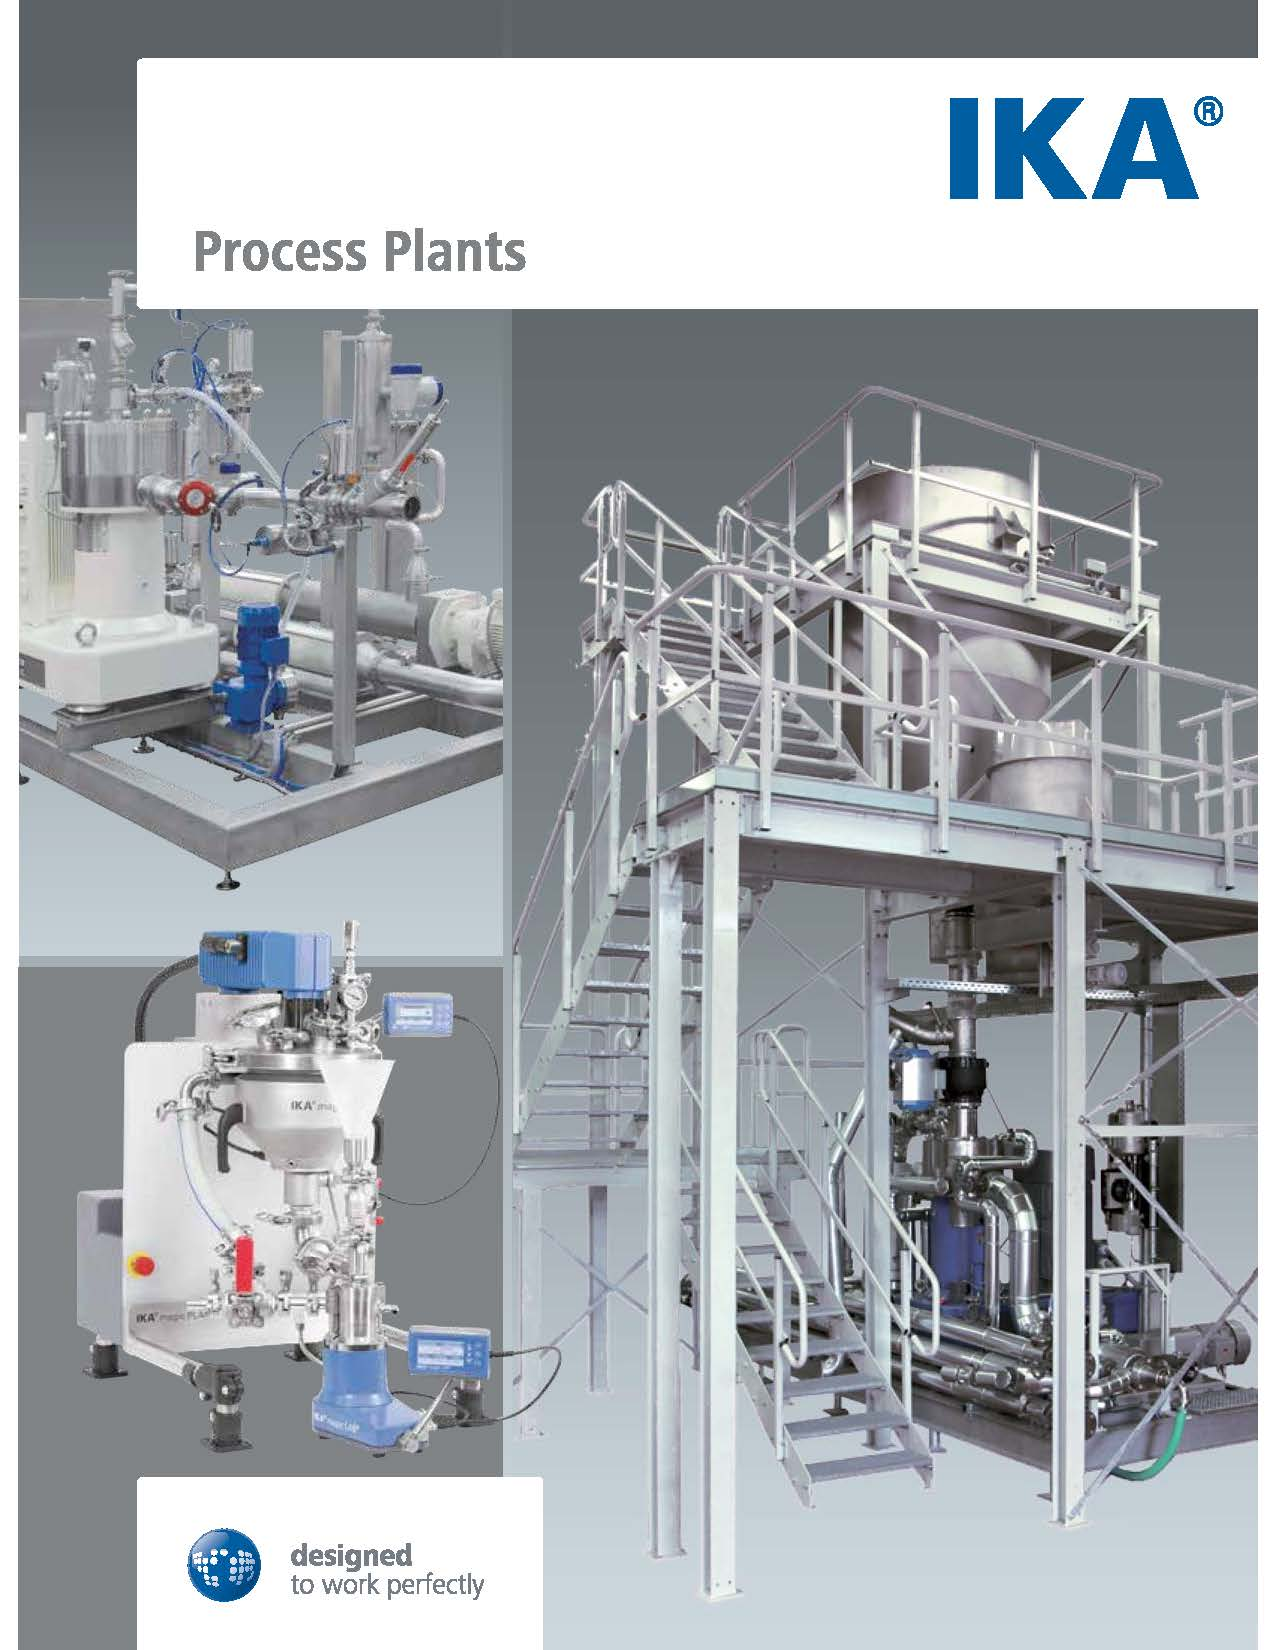 Process Plants Image